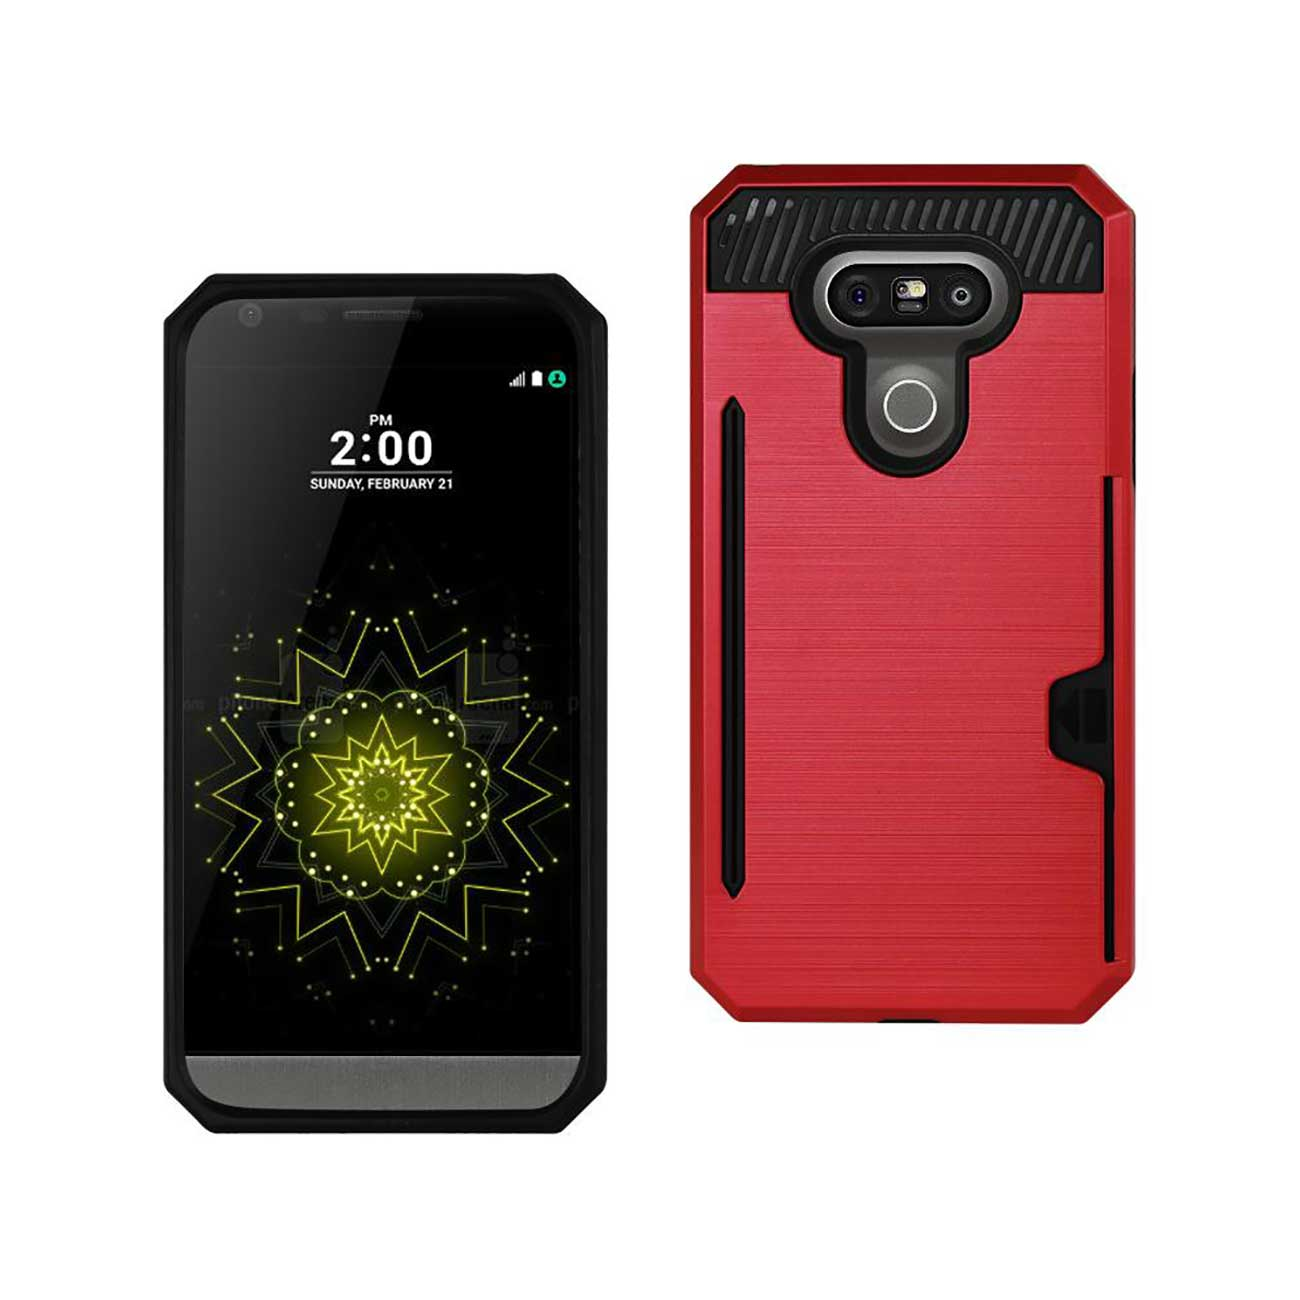 LG G5 SLIM ARMOR HYBRID CASE WITH CARD HOLDER IN RED